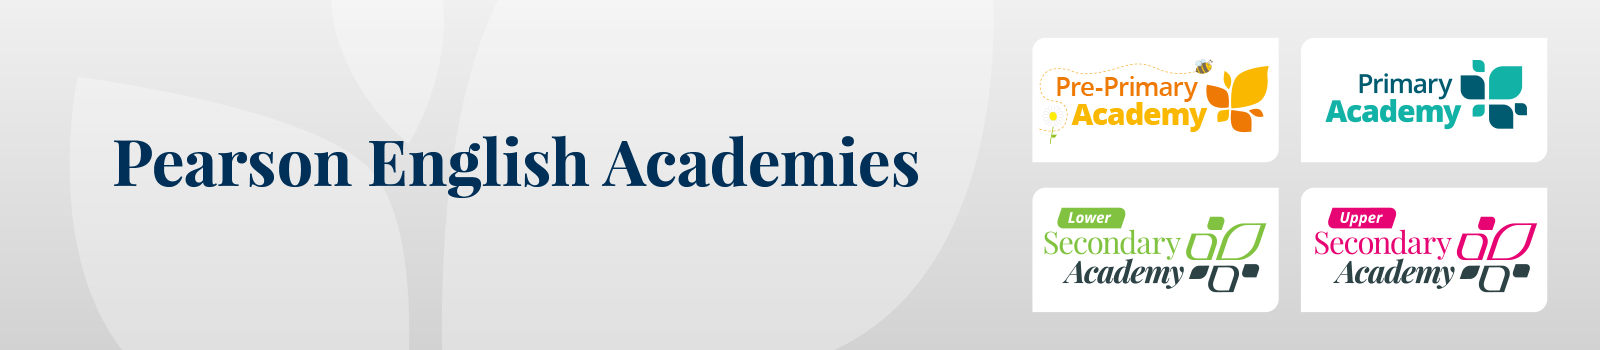 Academies banner image with 4 icons